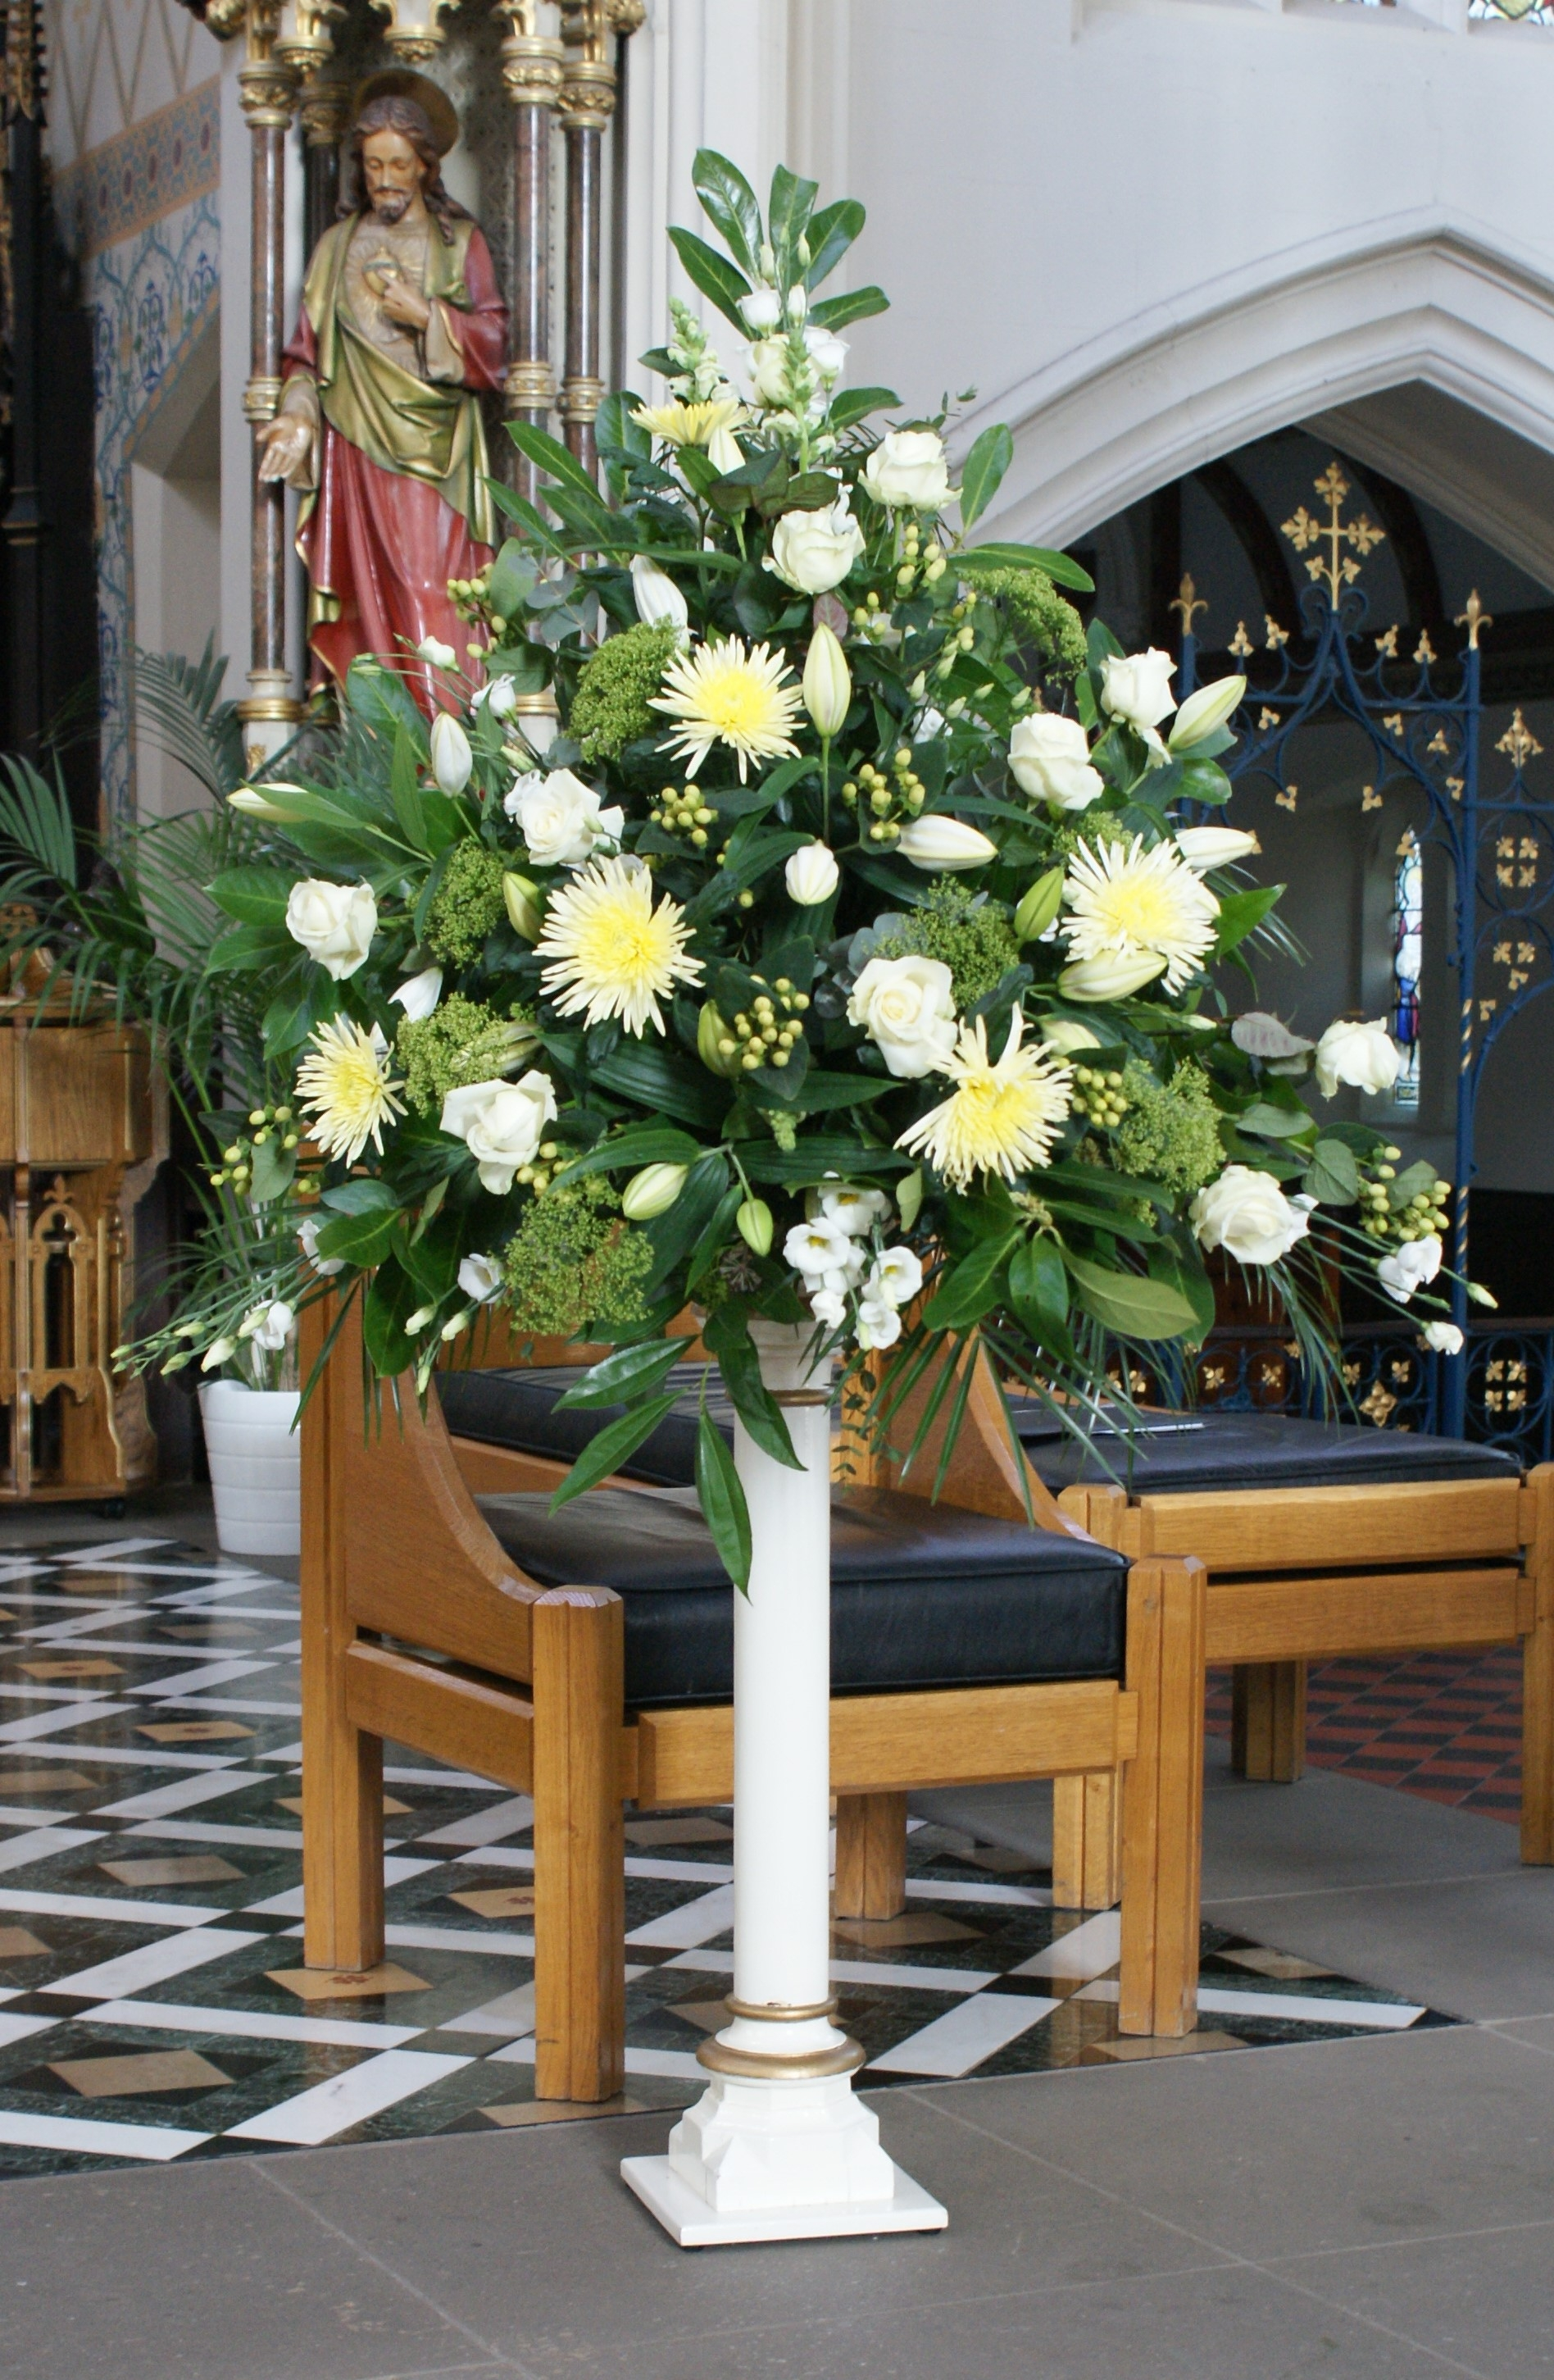 Funeral Flowers On Pedestals